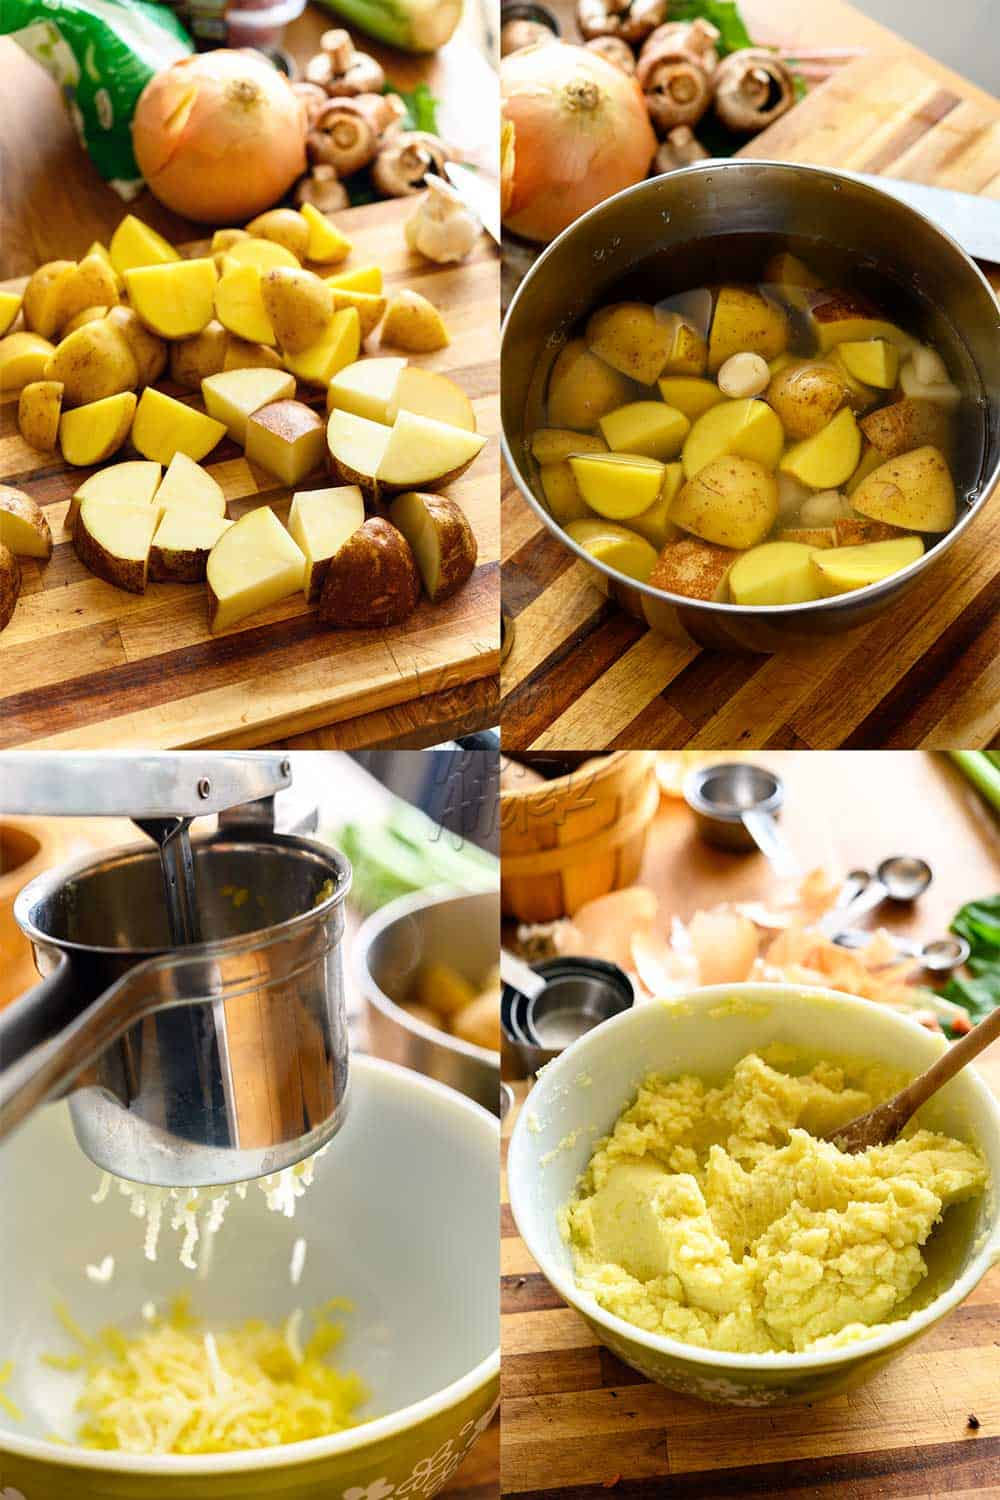 Upper left: chopped Yukon gold and russet potatoes chopped on a cutting board, Upper right: potatoes in a pot with garlic cloves, covered in water, on a cutting board, Bottom left: squeezing potatoes through a ricer into a bowl, Bottom right: vegan mashed potatoes in a mixing bowl on a cutting board